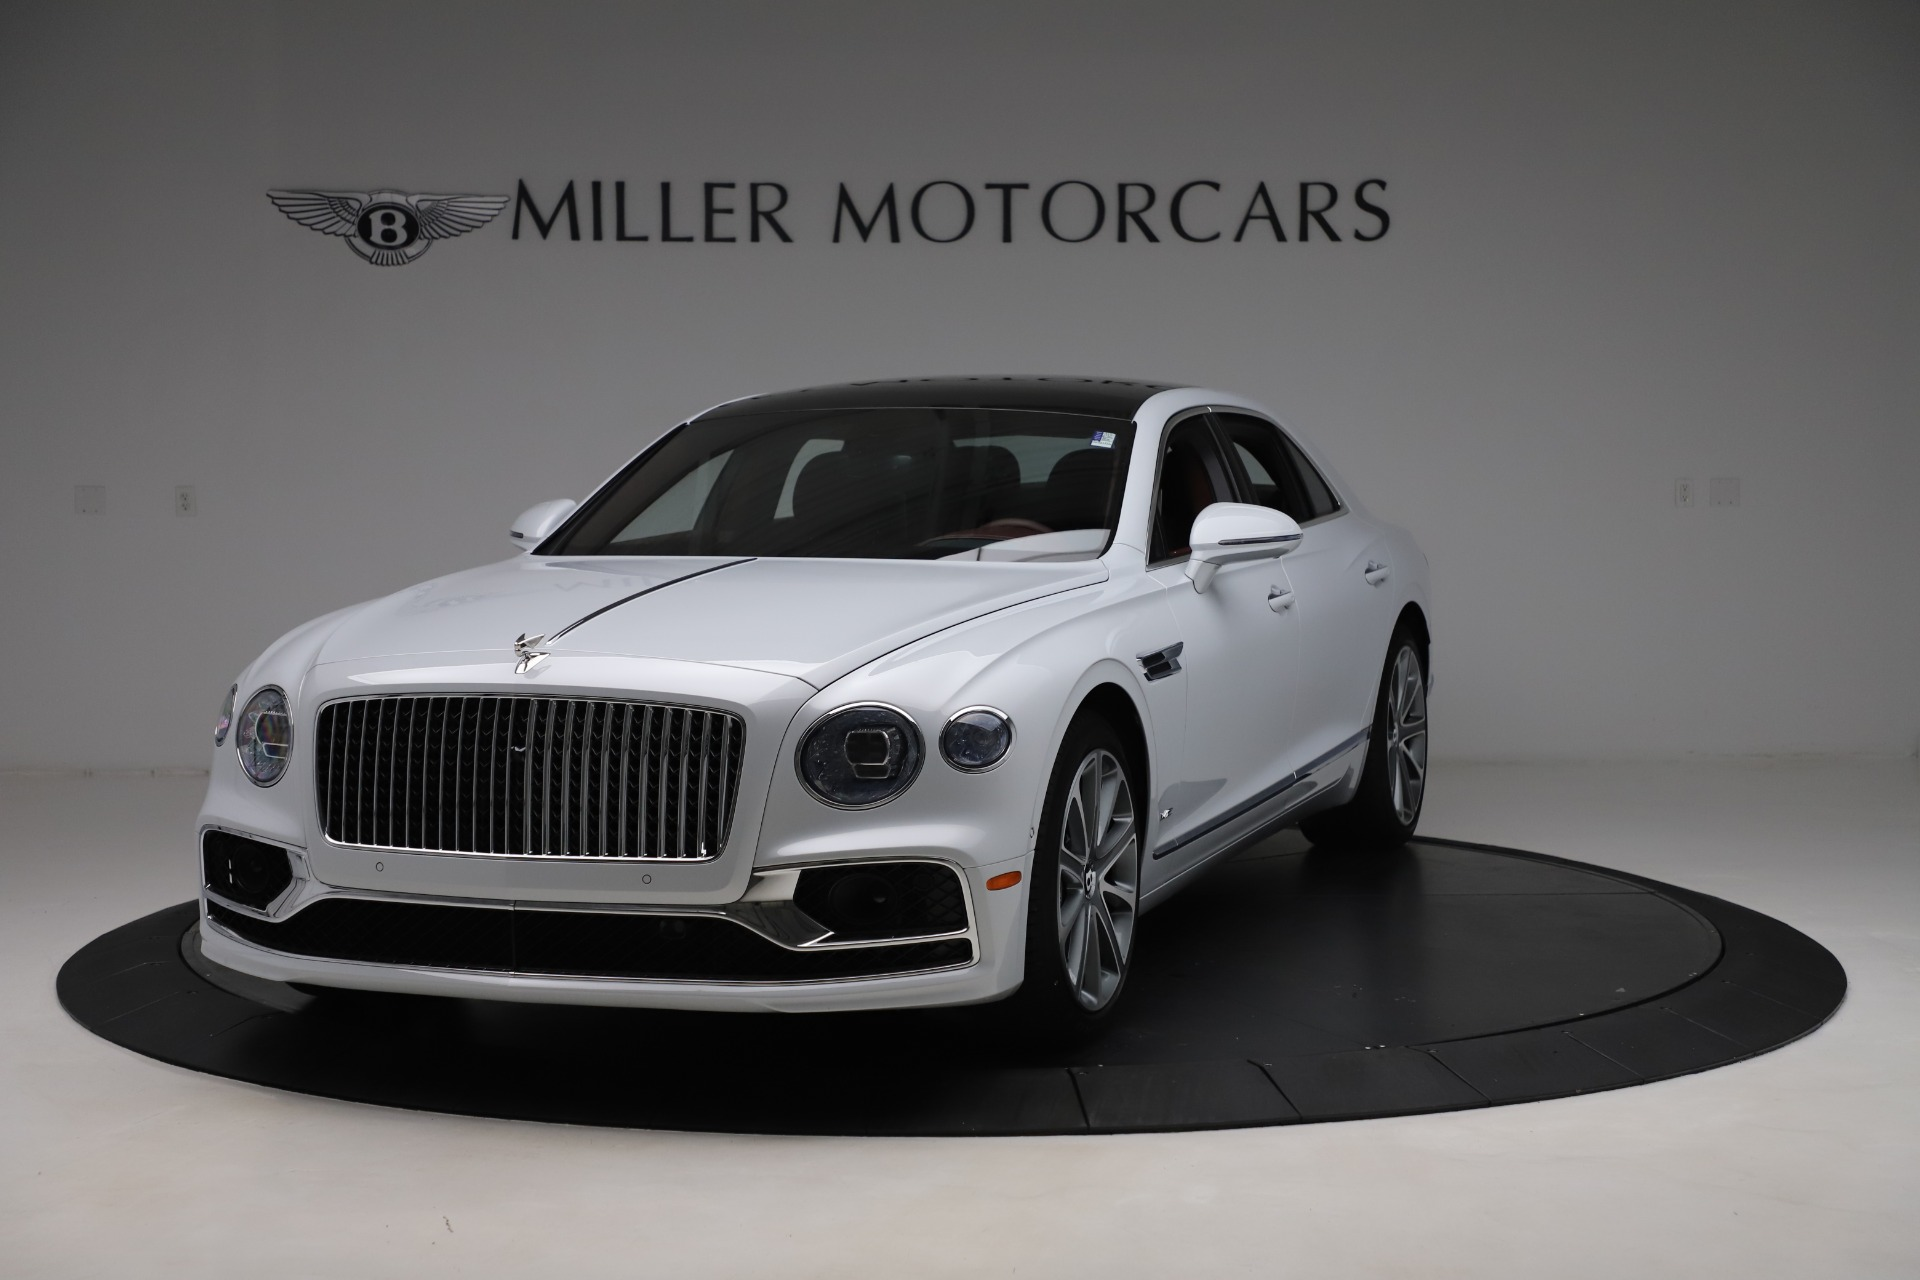 New 2021 Bentley Flying Spur  For Sale In Westport, CT 3230_main